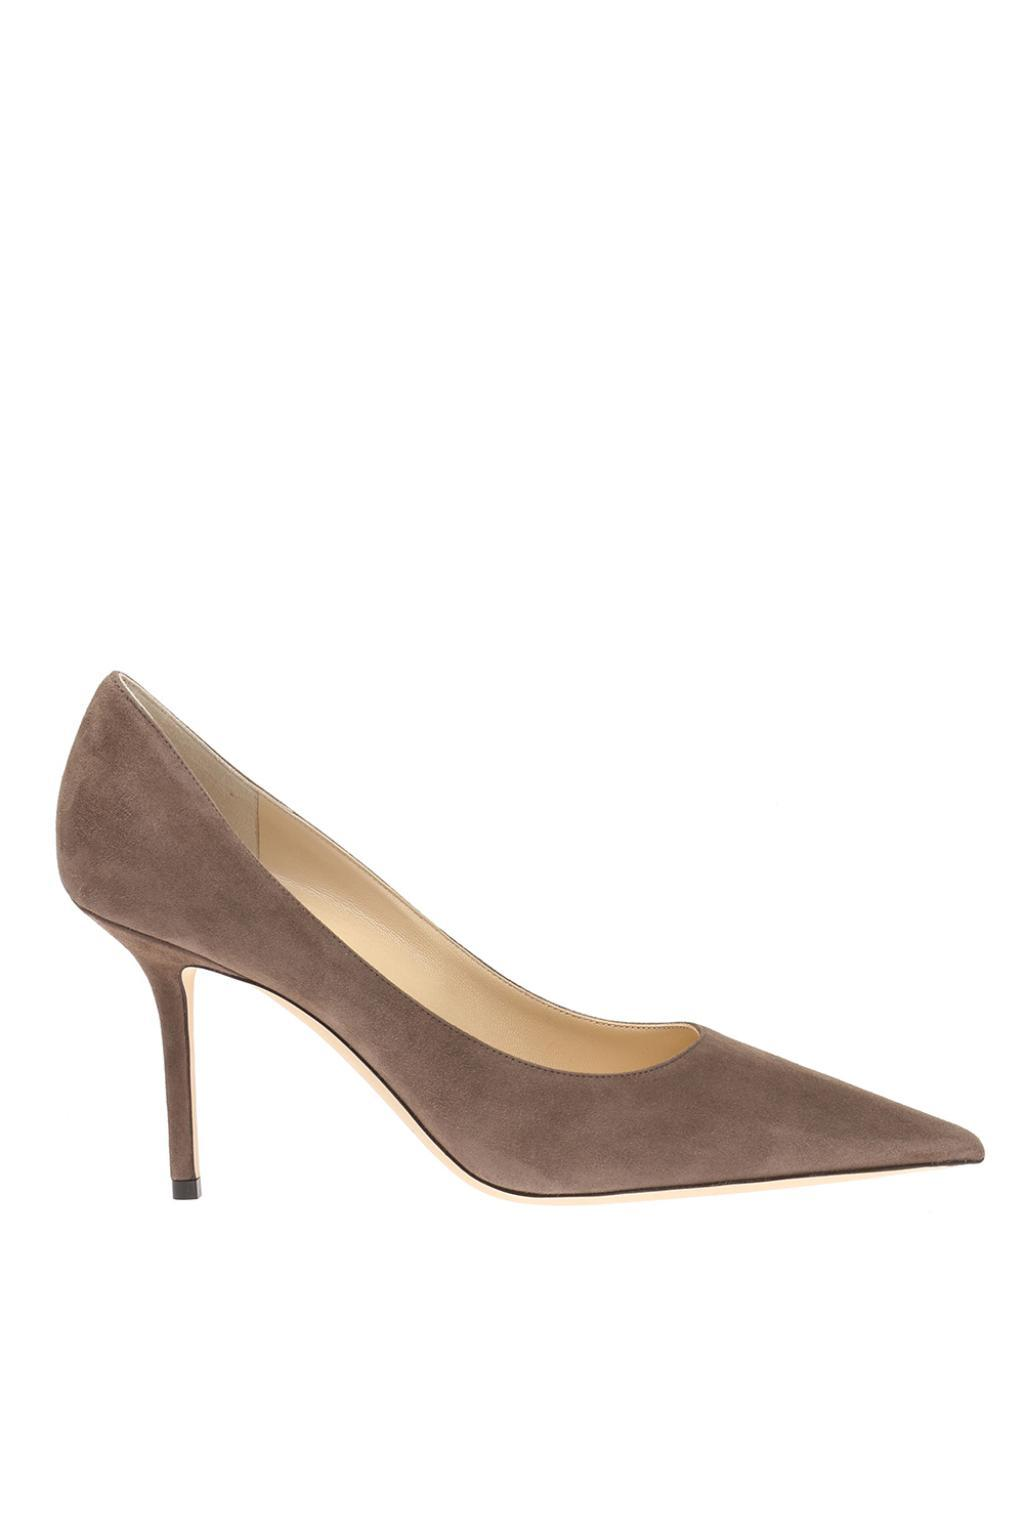 f811673f5 Lyst - Jimmy Choo 'love' Stiletto Pumps in Brown